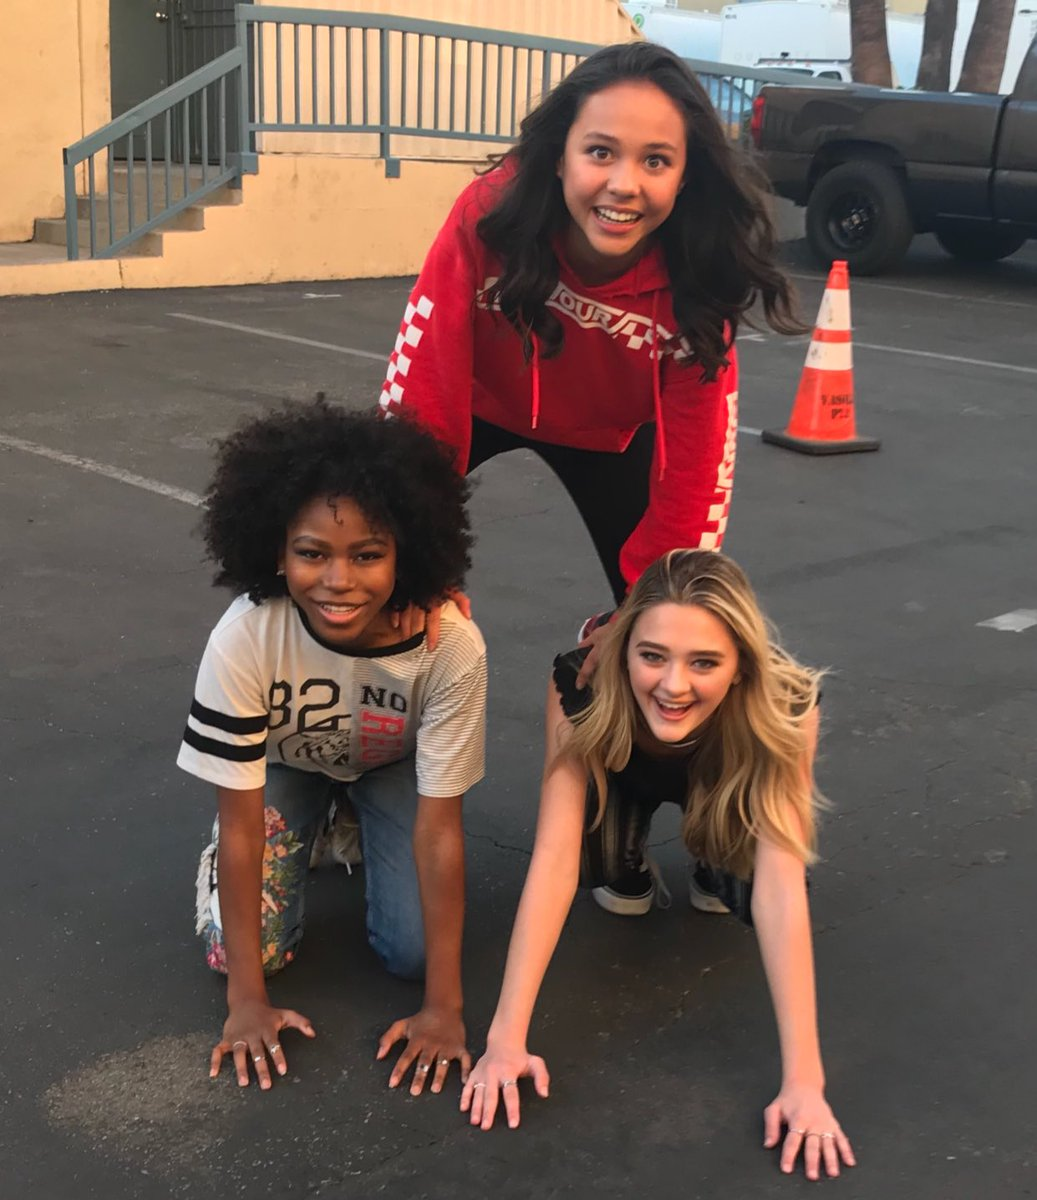 Breanna yde on twitter the true face of fear altavistaventures Image collections